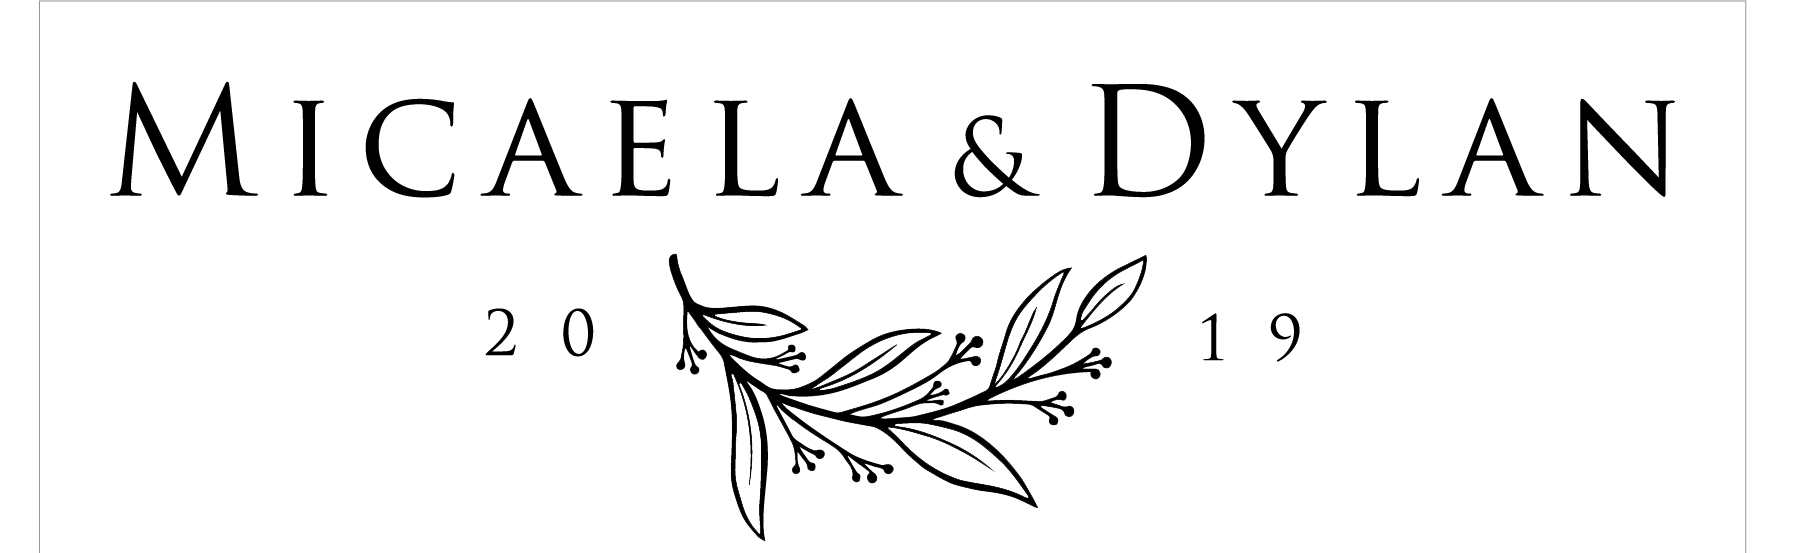 Micaela&Dylan logos final copy.png